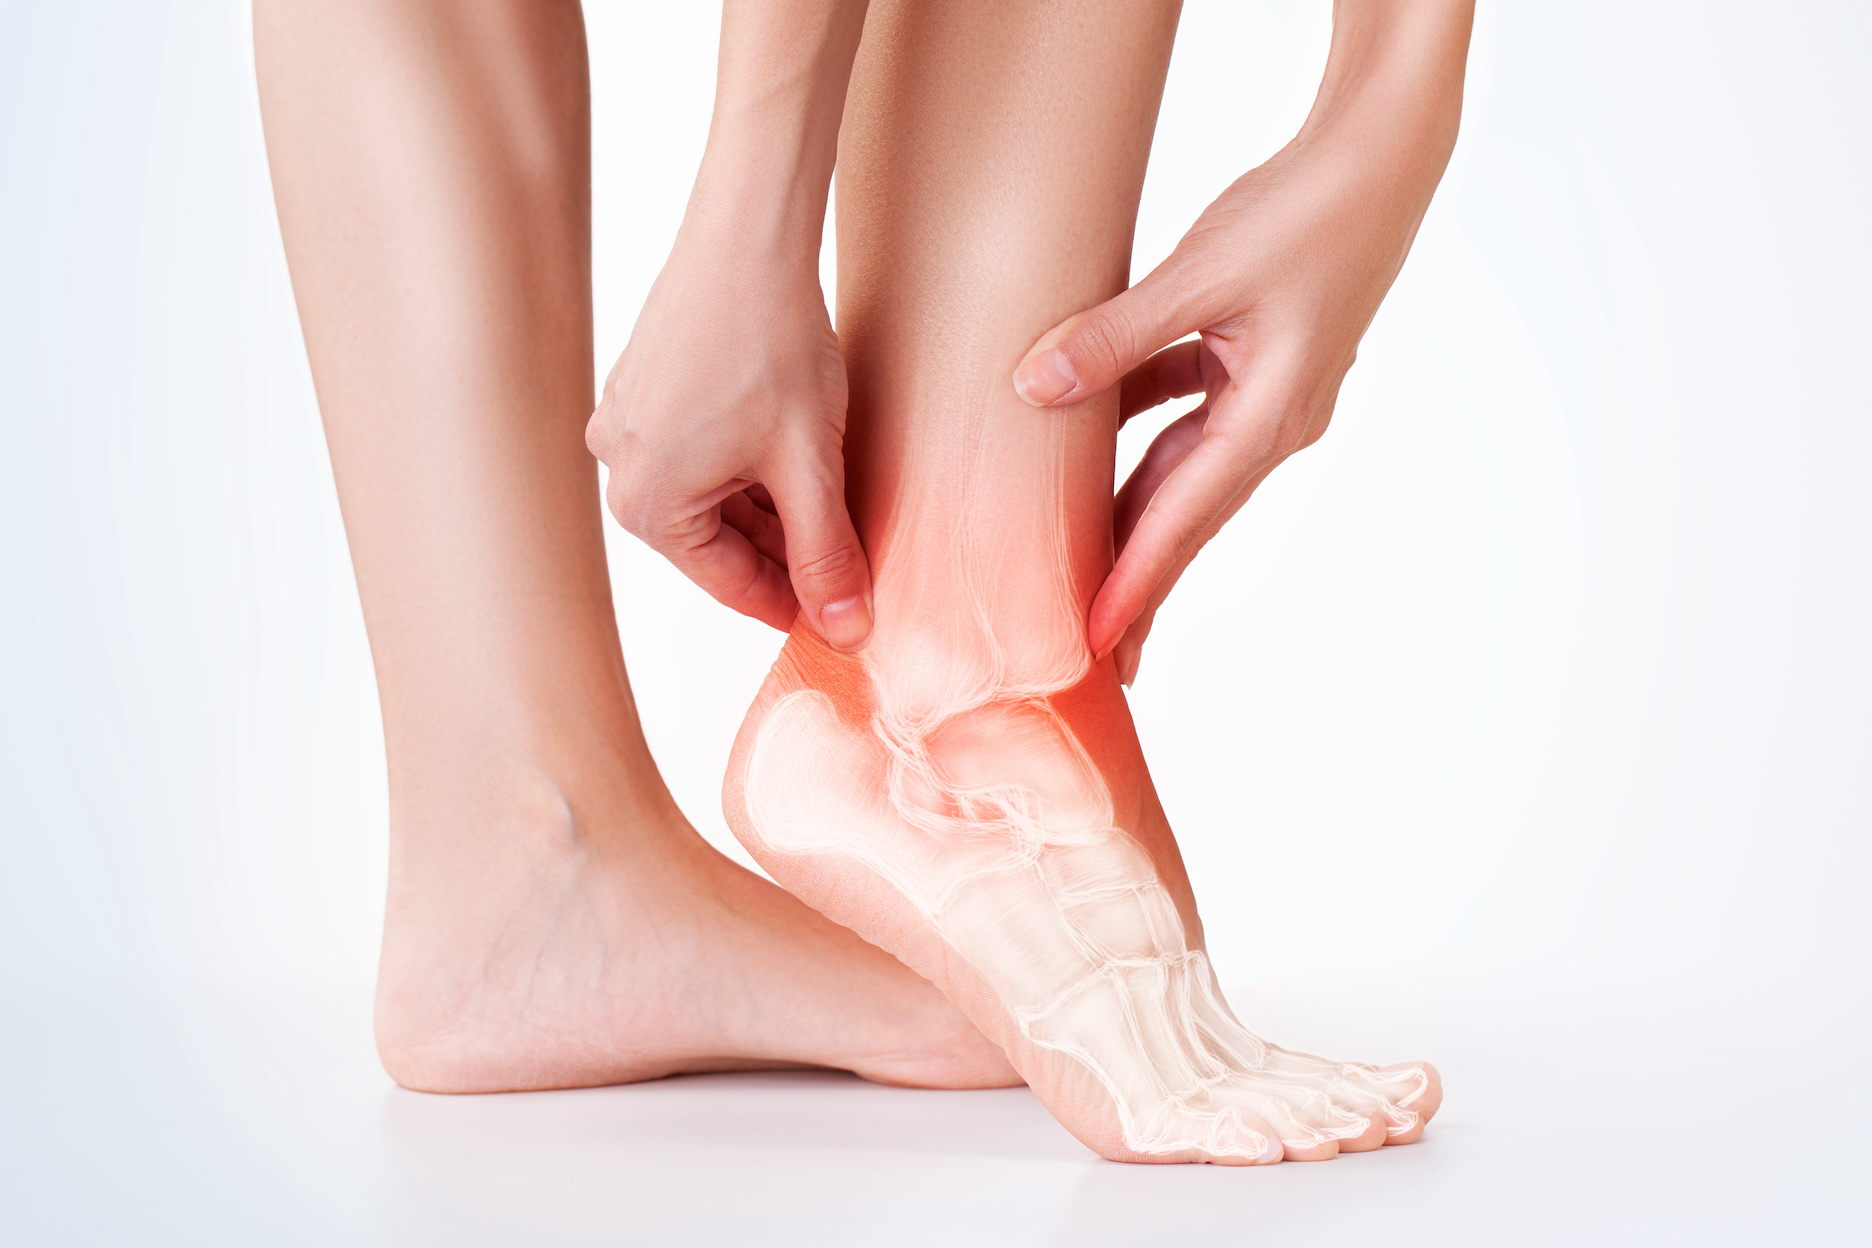 Image of foot and ankle in pain